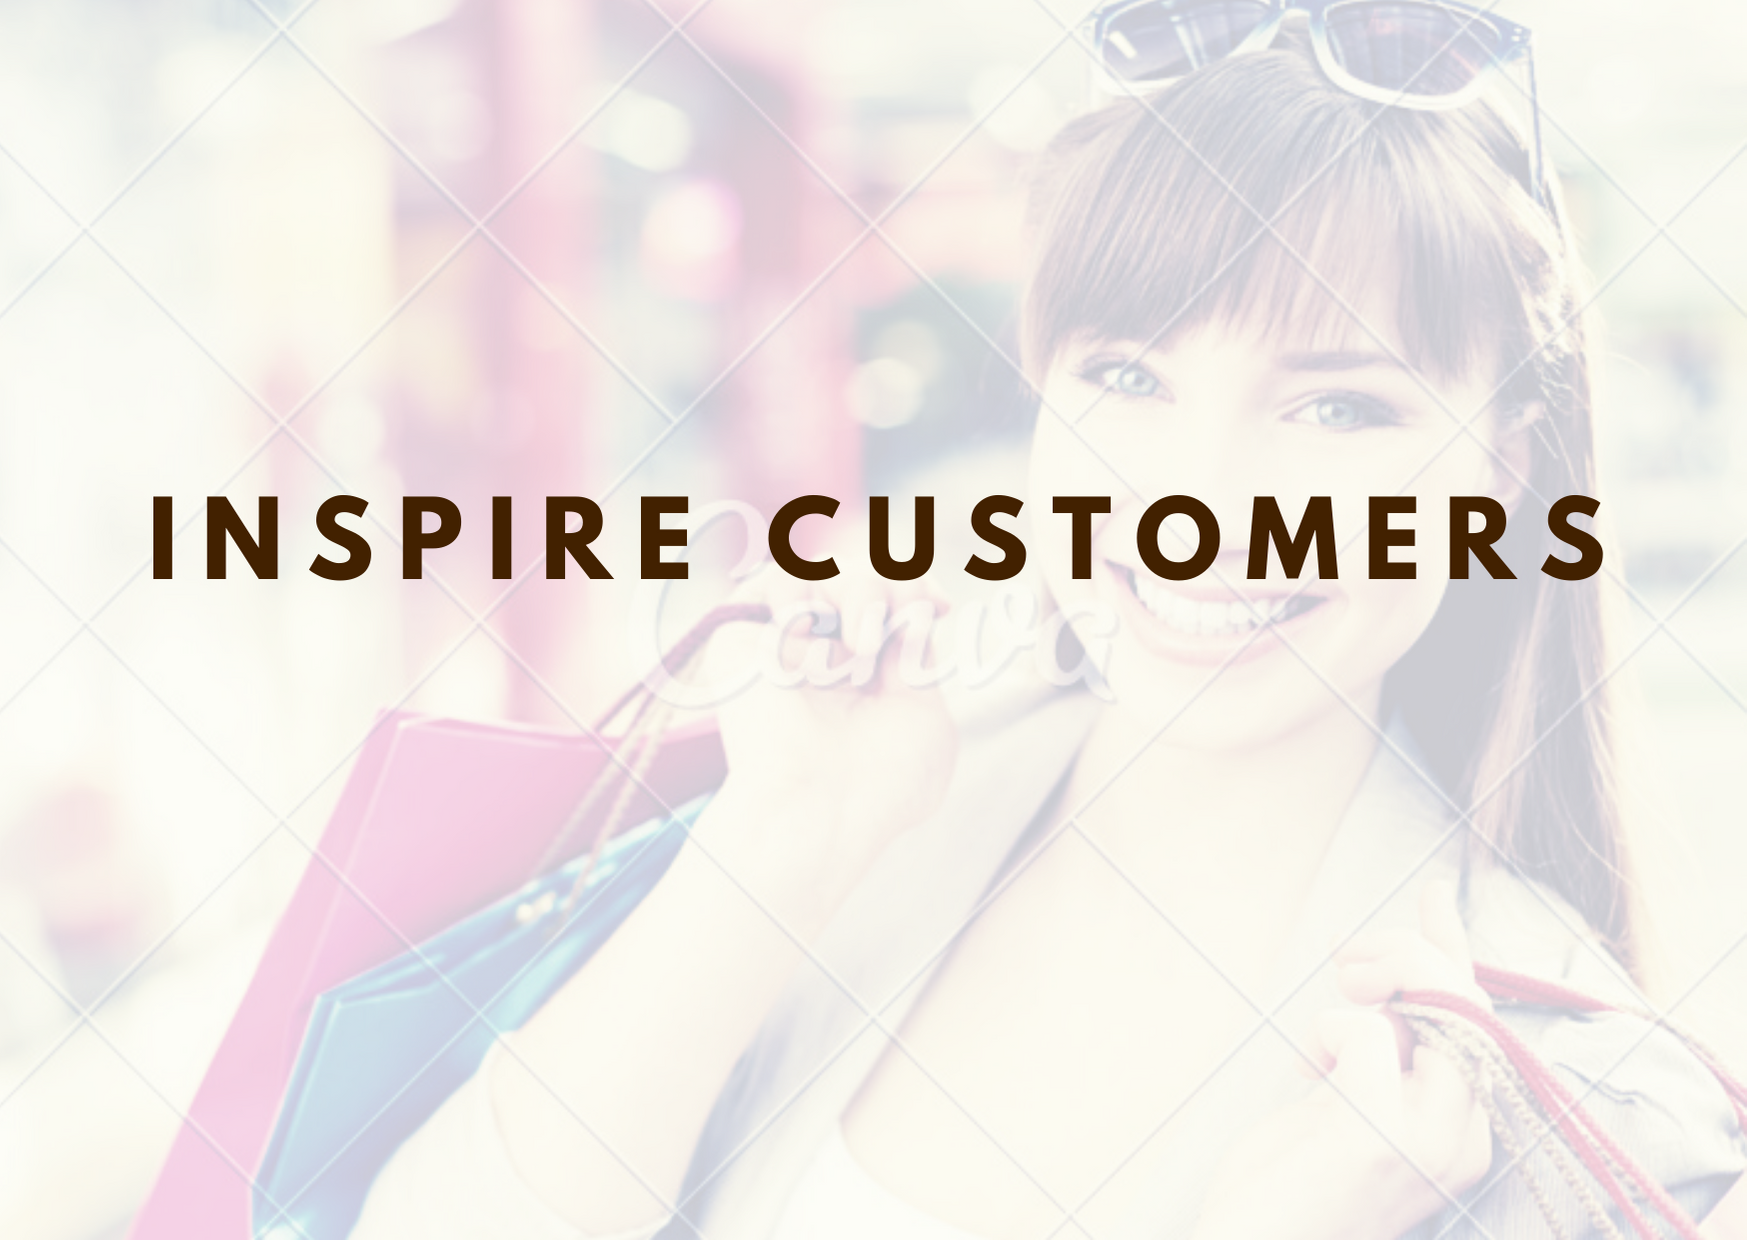 Marketing and sales alignment to inspire your customers